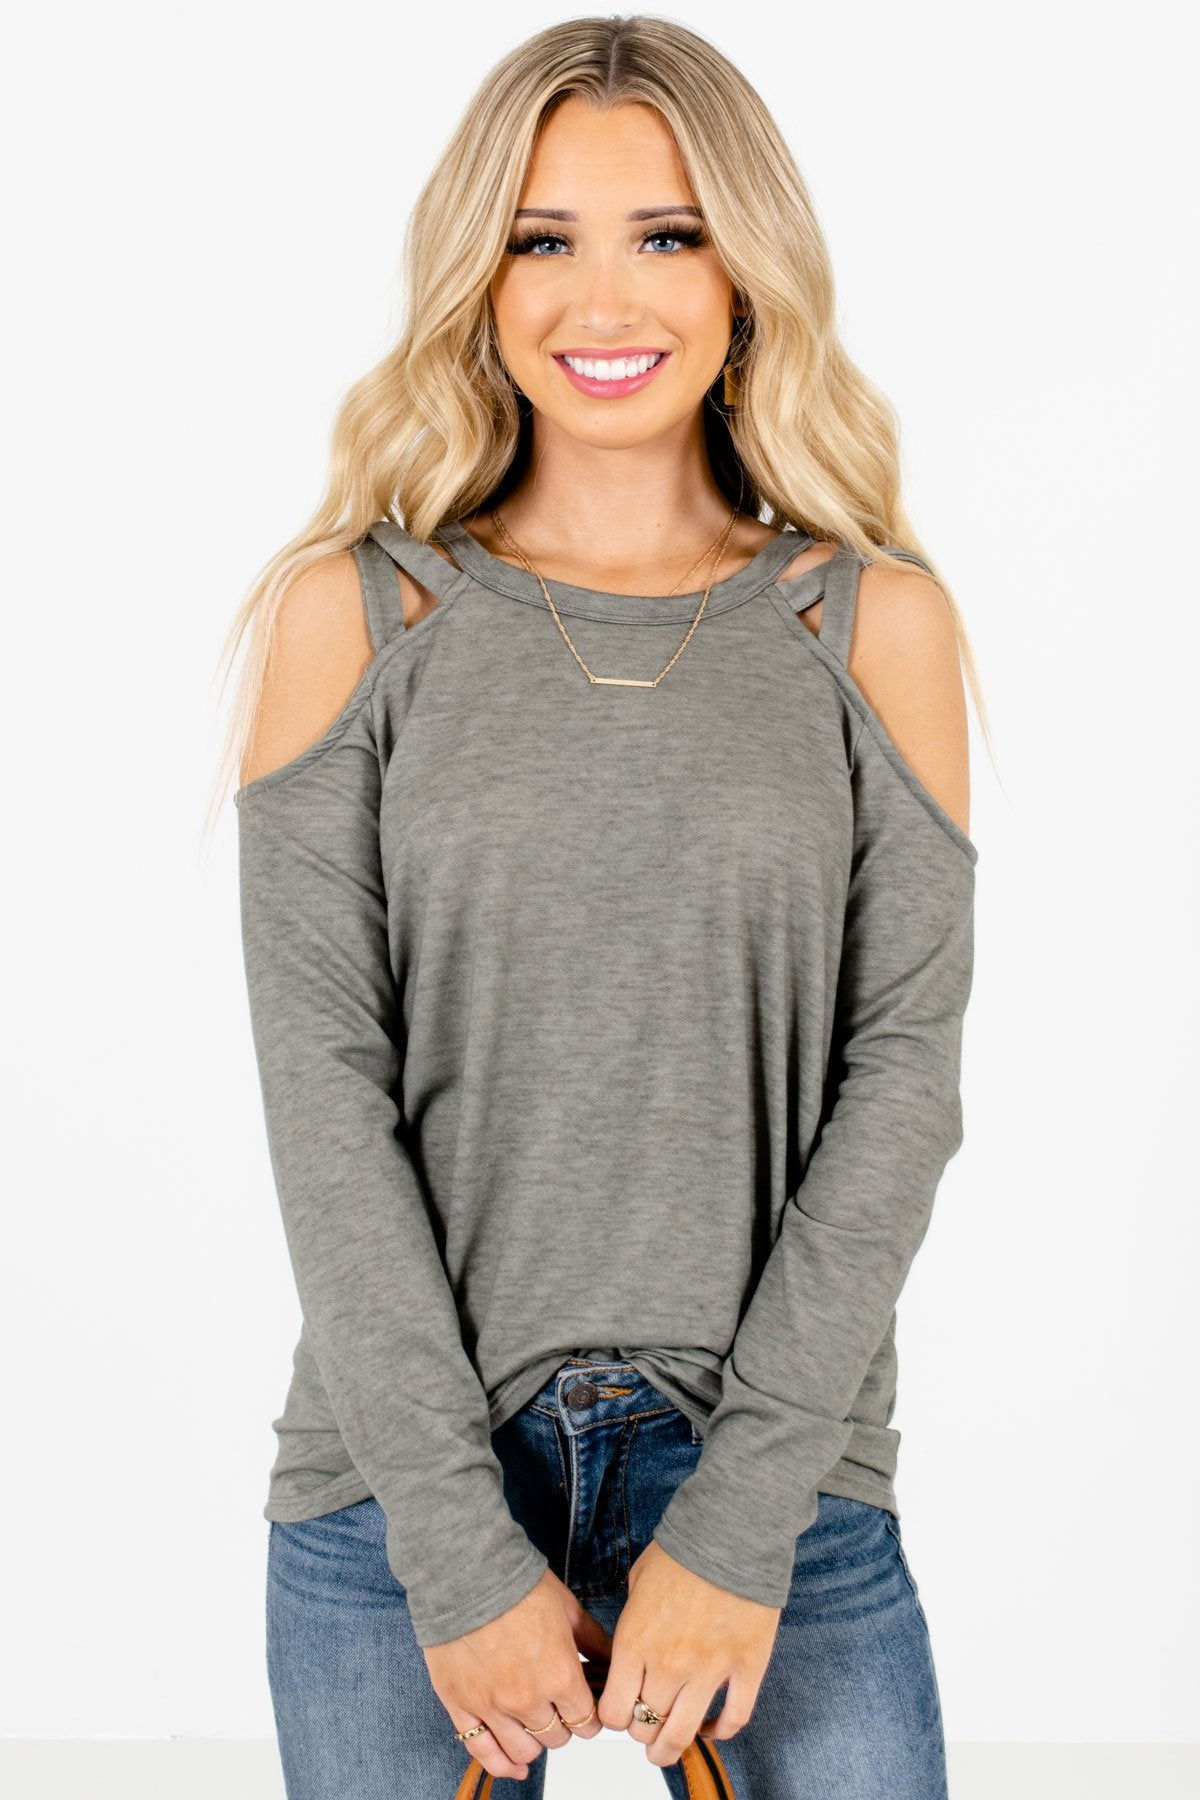 Green Cold Shoulder Style Boutique Tops for Women